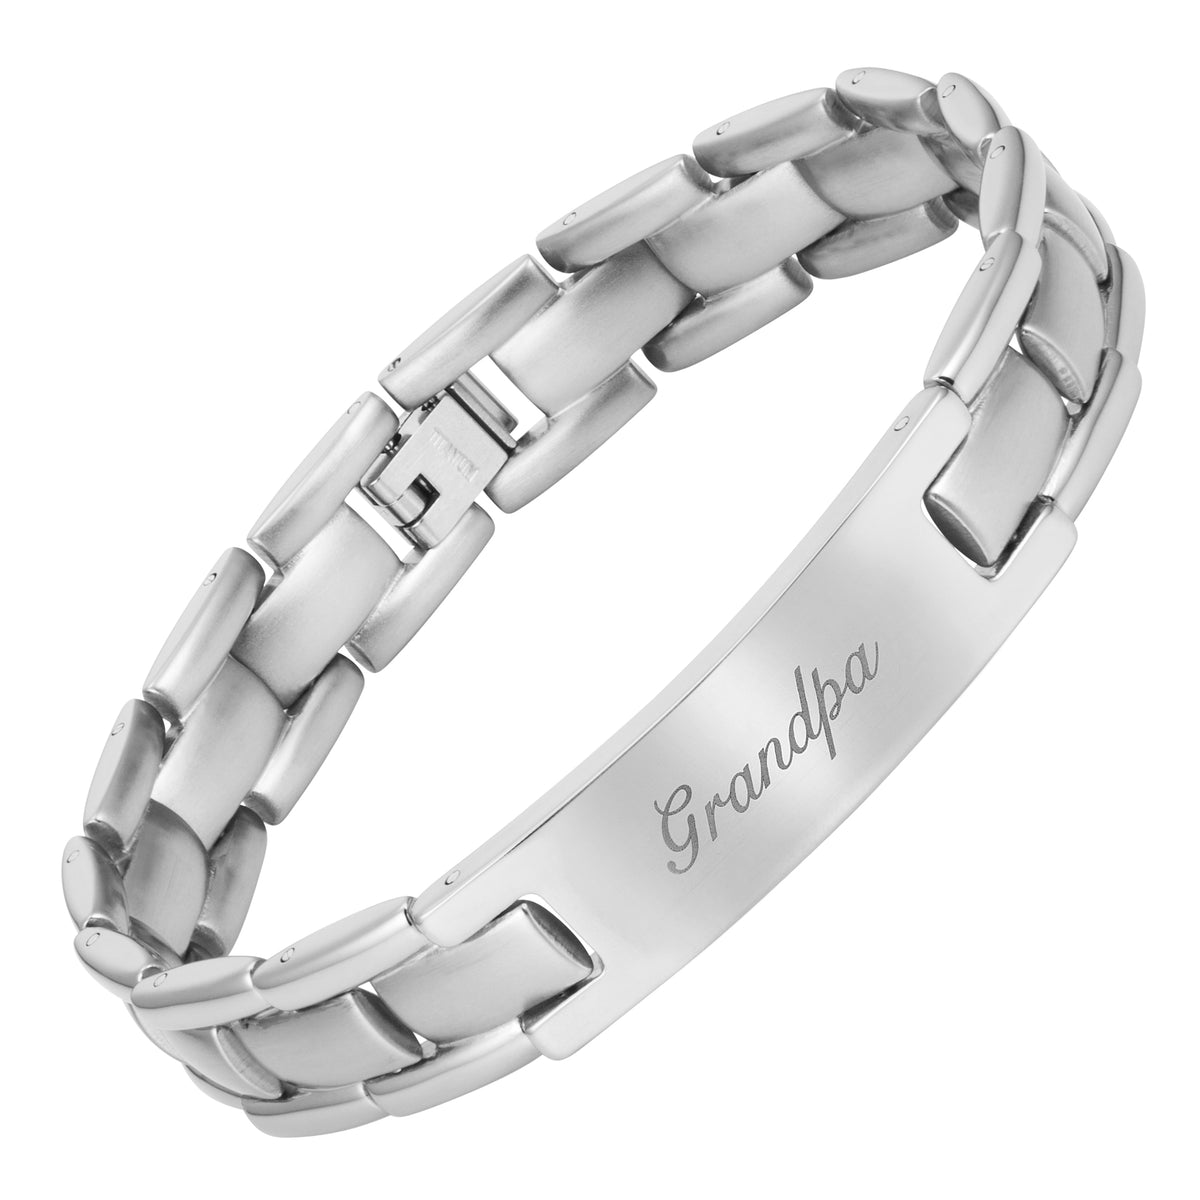 Mens Titanium Engraved with Grandpa, Love You Grandpa